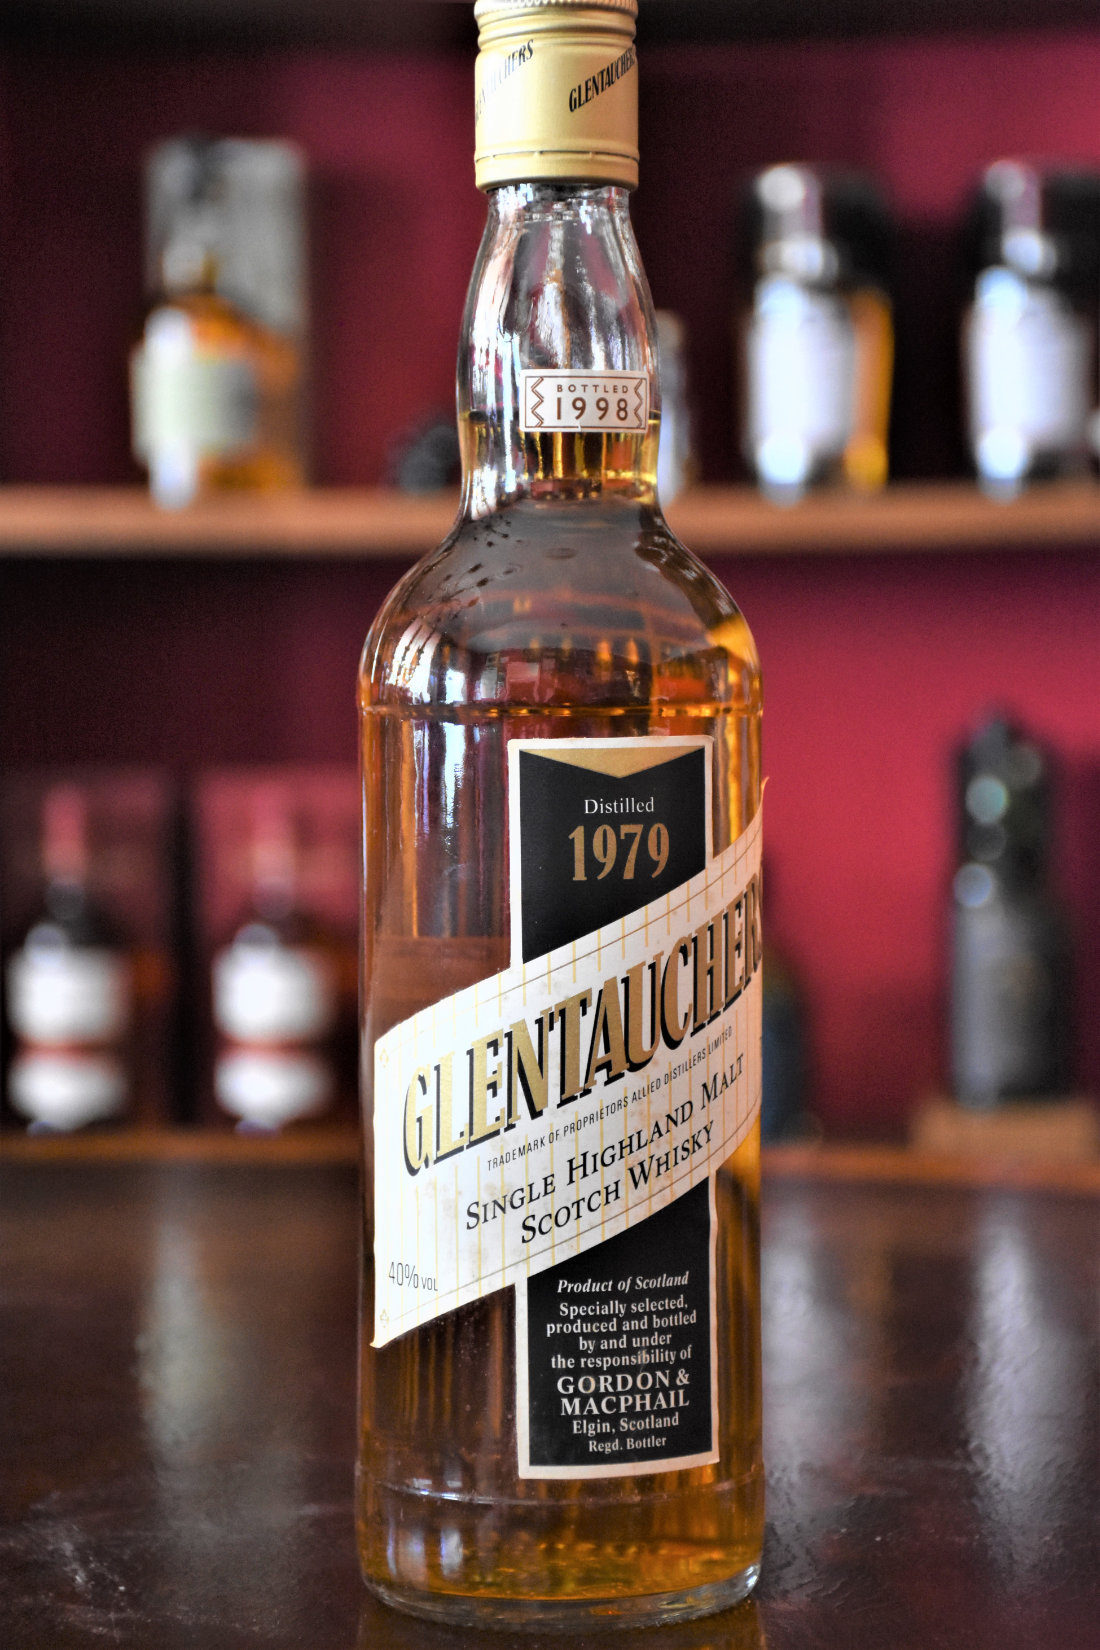 Glentauchers 1979 - Bottled 1998, Speyside, 40% Alc.Vol.,  Gordon & MacPhail